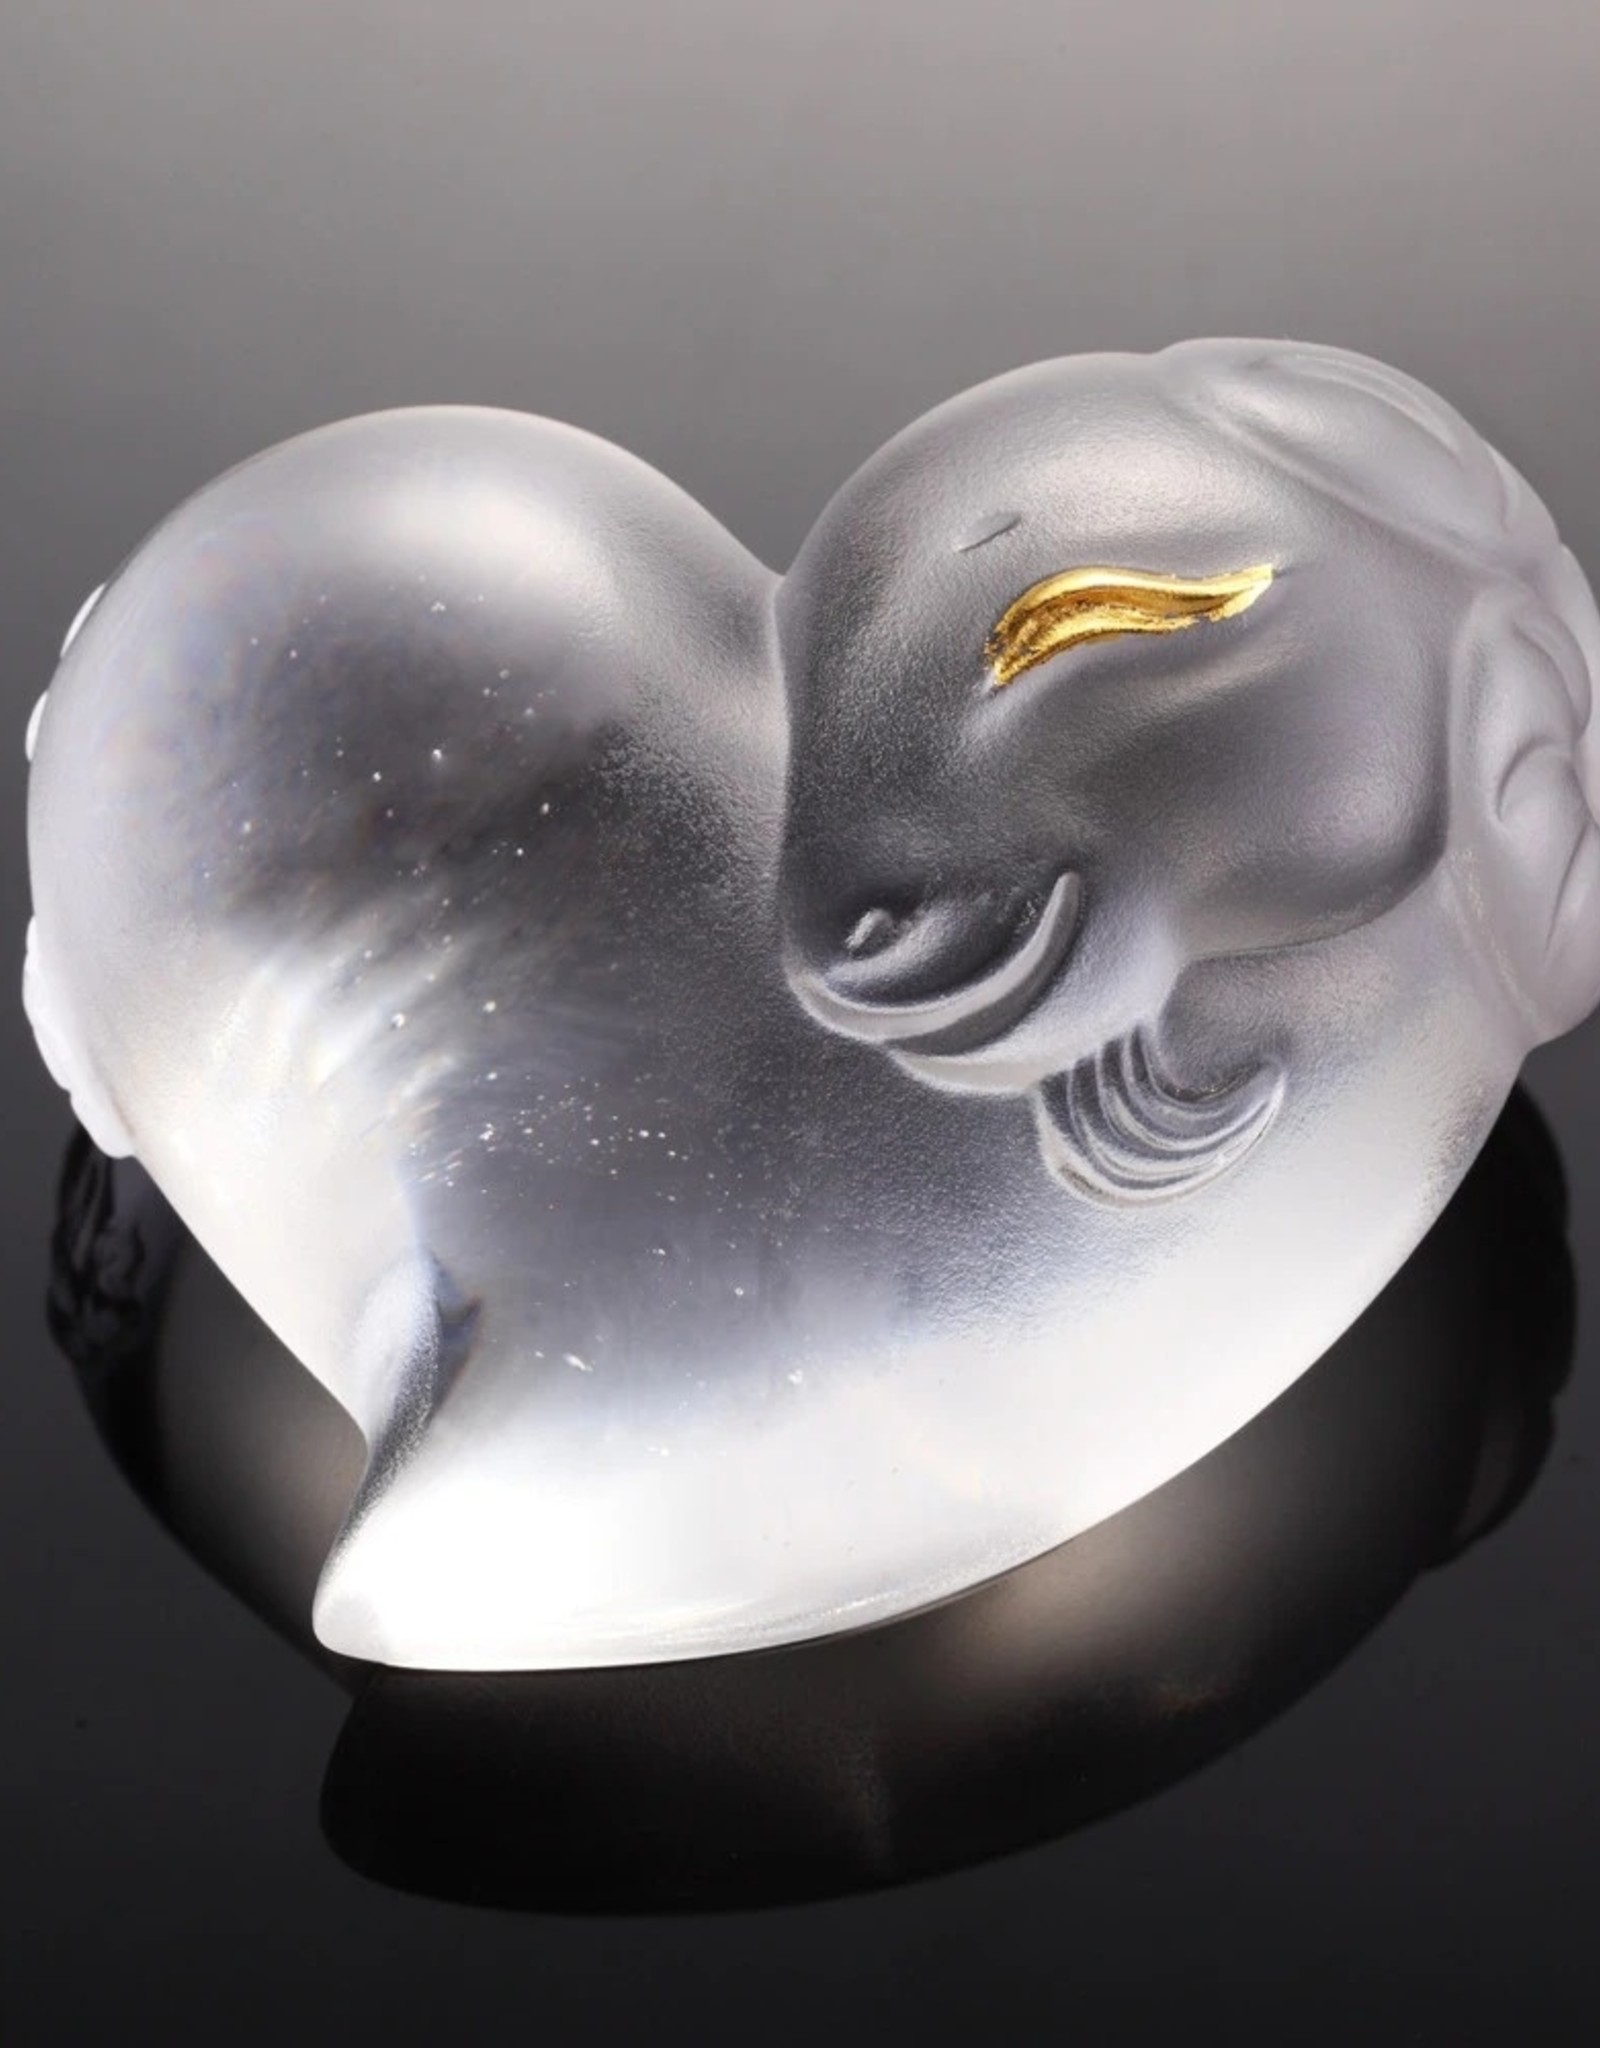 """LIULI Crystal Art Crystal Heart-Shaped """"Its Star, Its Heart"""" Sheep Paperweight in Powder White & 24K Gold Leaf (Limited Edition)"""